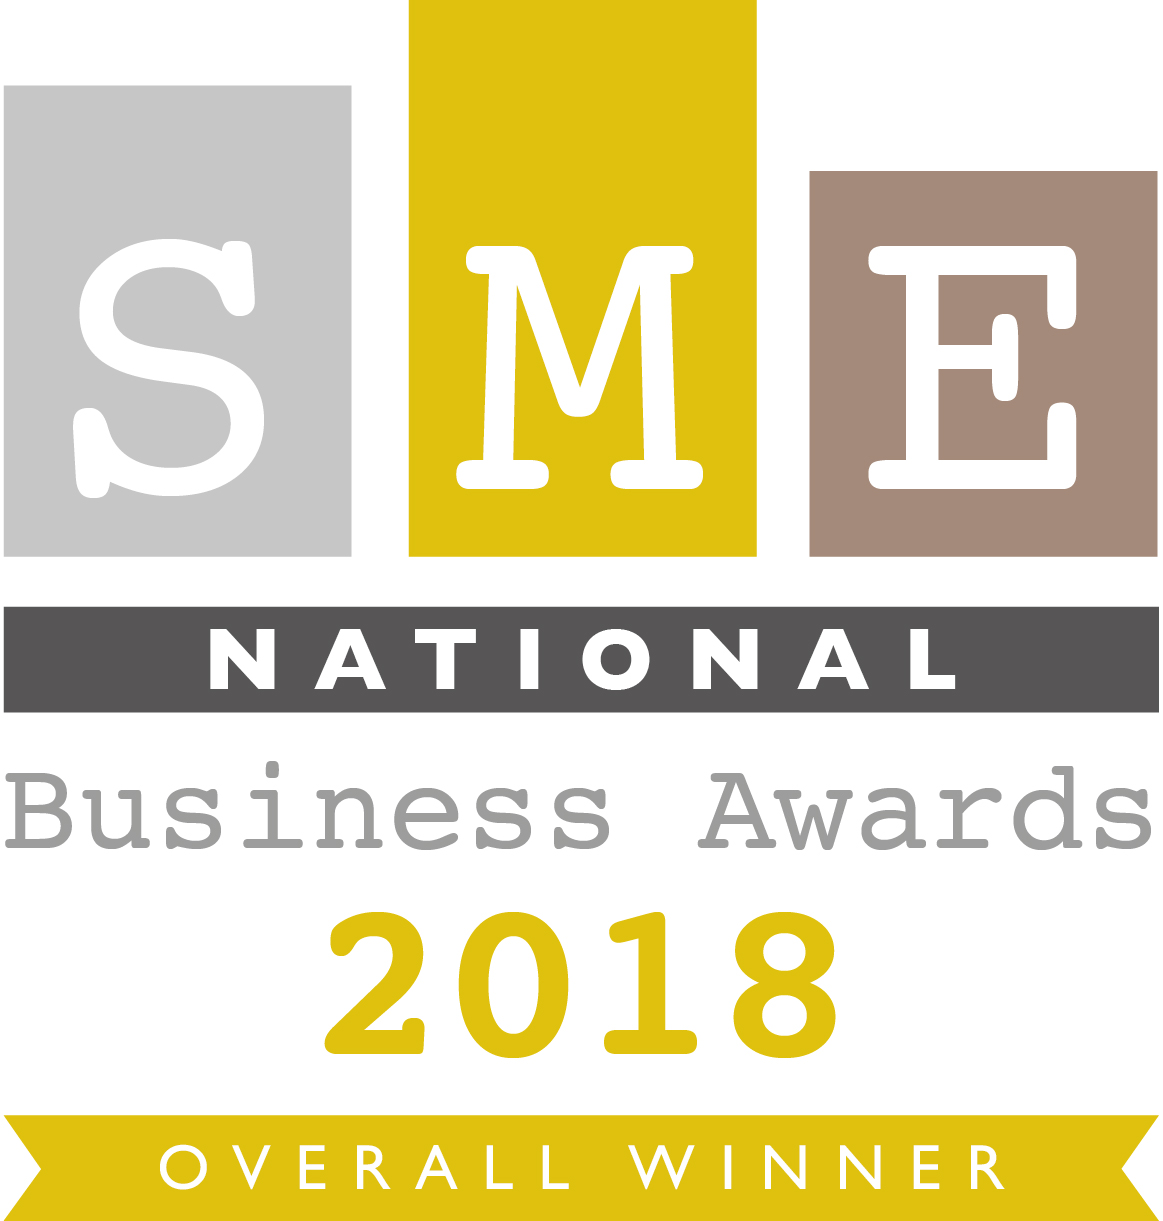 SME National Business Award_Overall Winner_2018